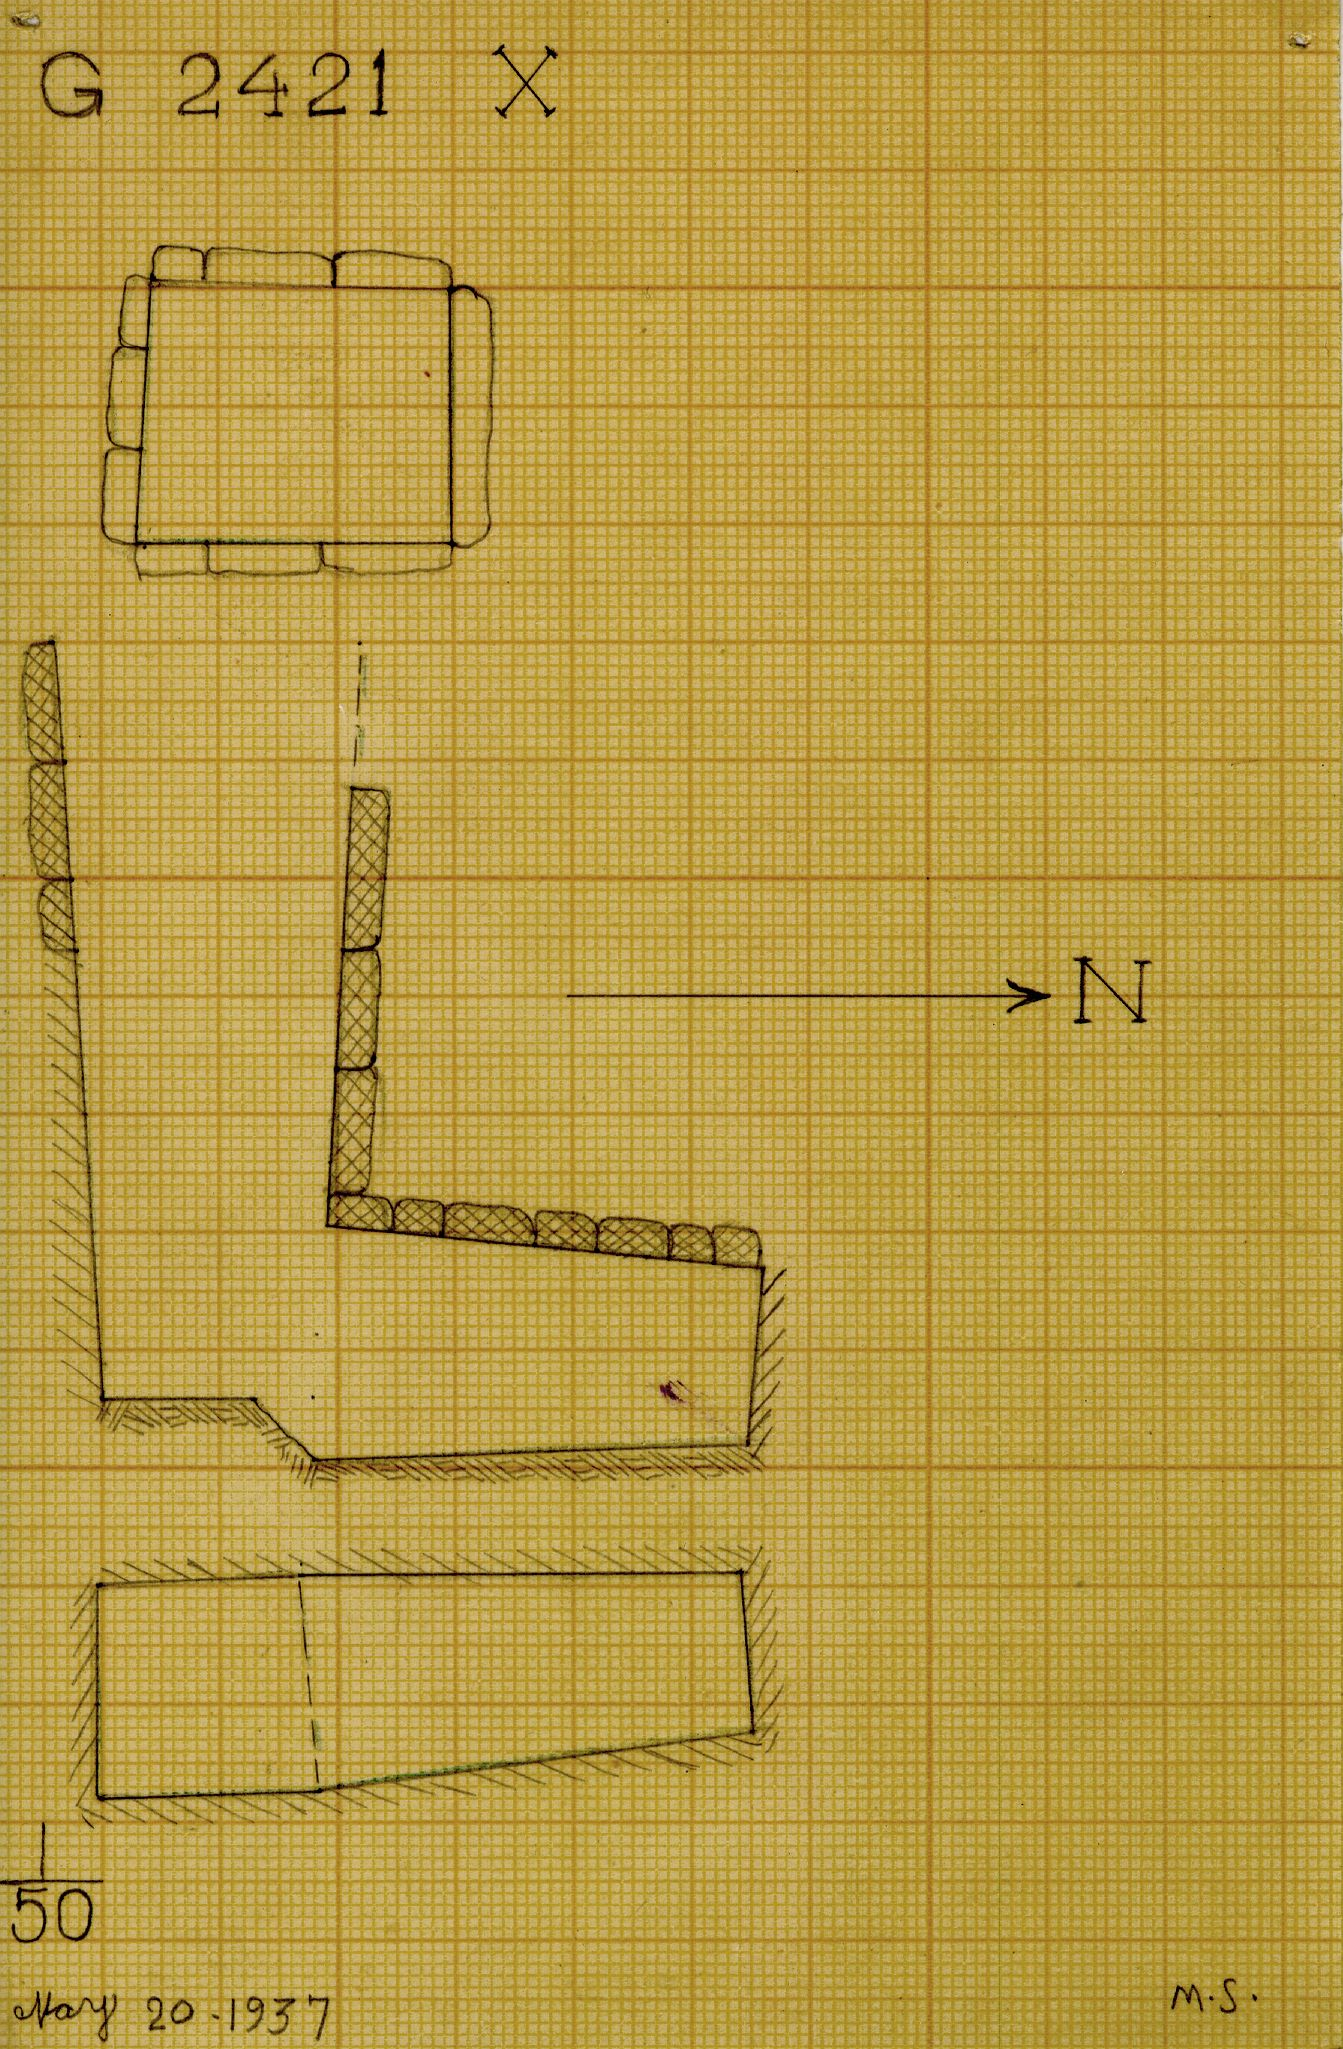 Maps and plans: G 2421, Shaft X